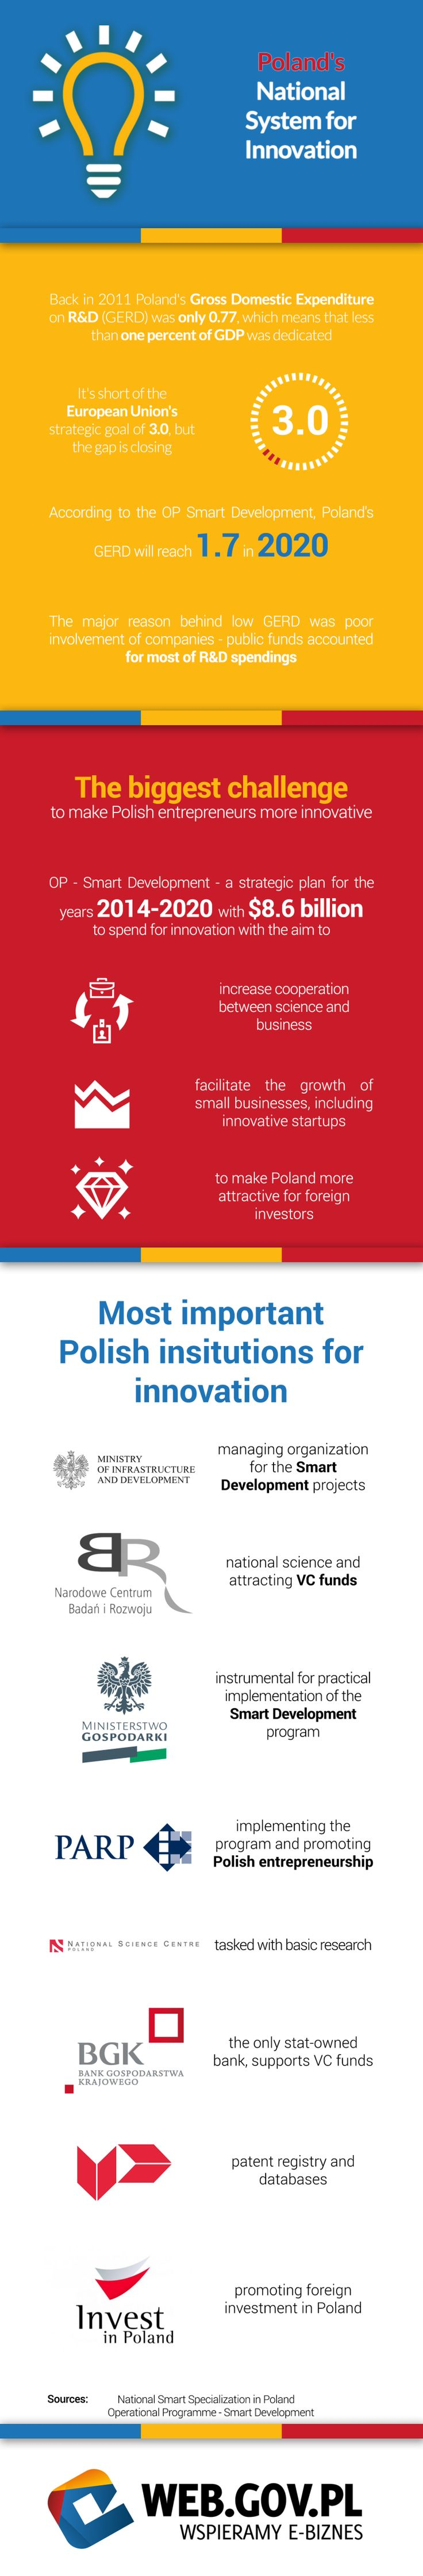 Poland's National System for Innovation PART 1